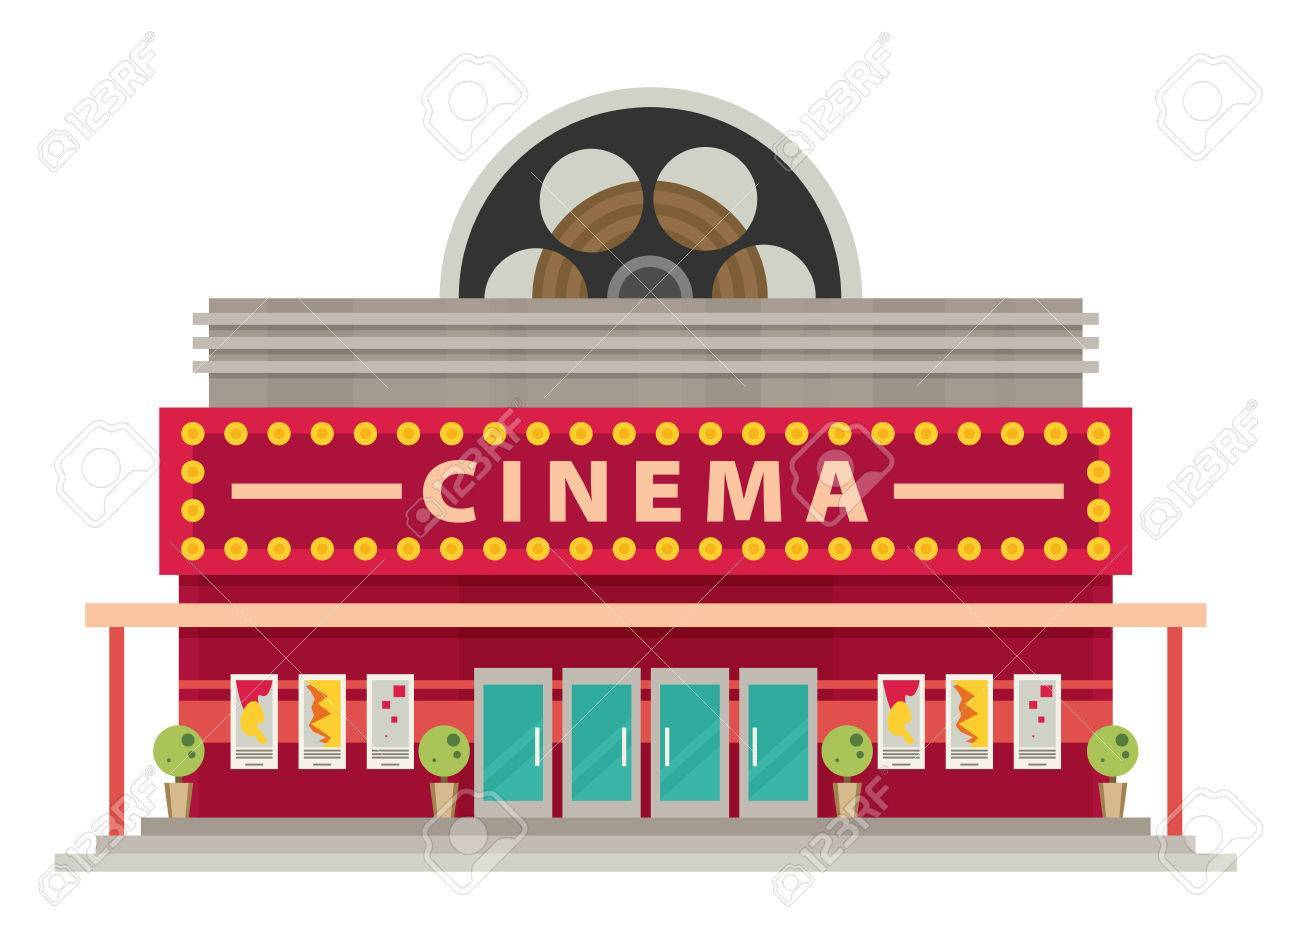 Cinema building flat style. Movie Theater. » Clipart Portal.